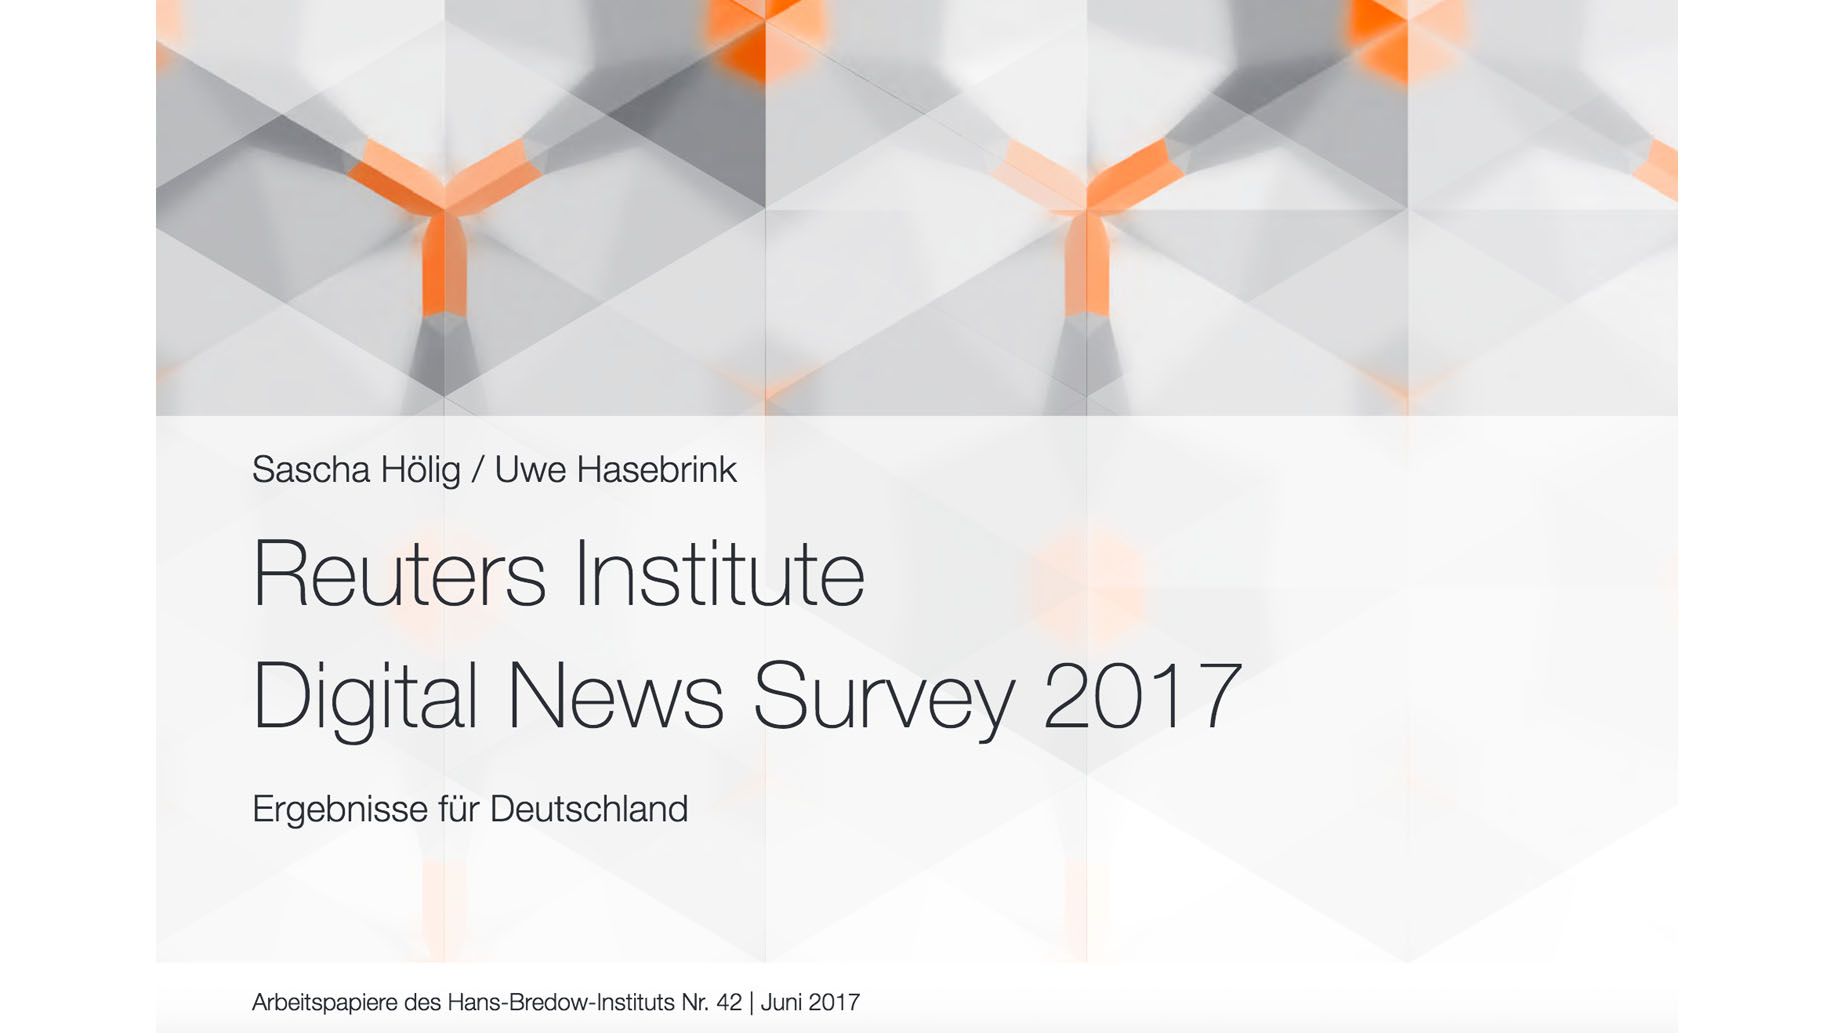 reuters-digital-news-2017-1